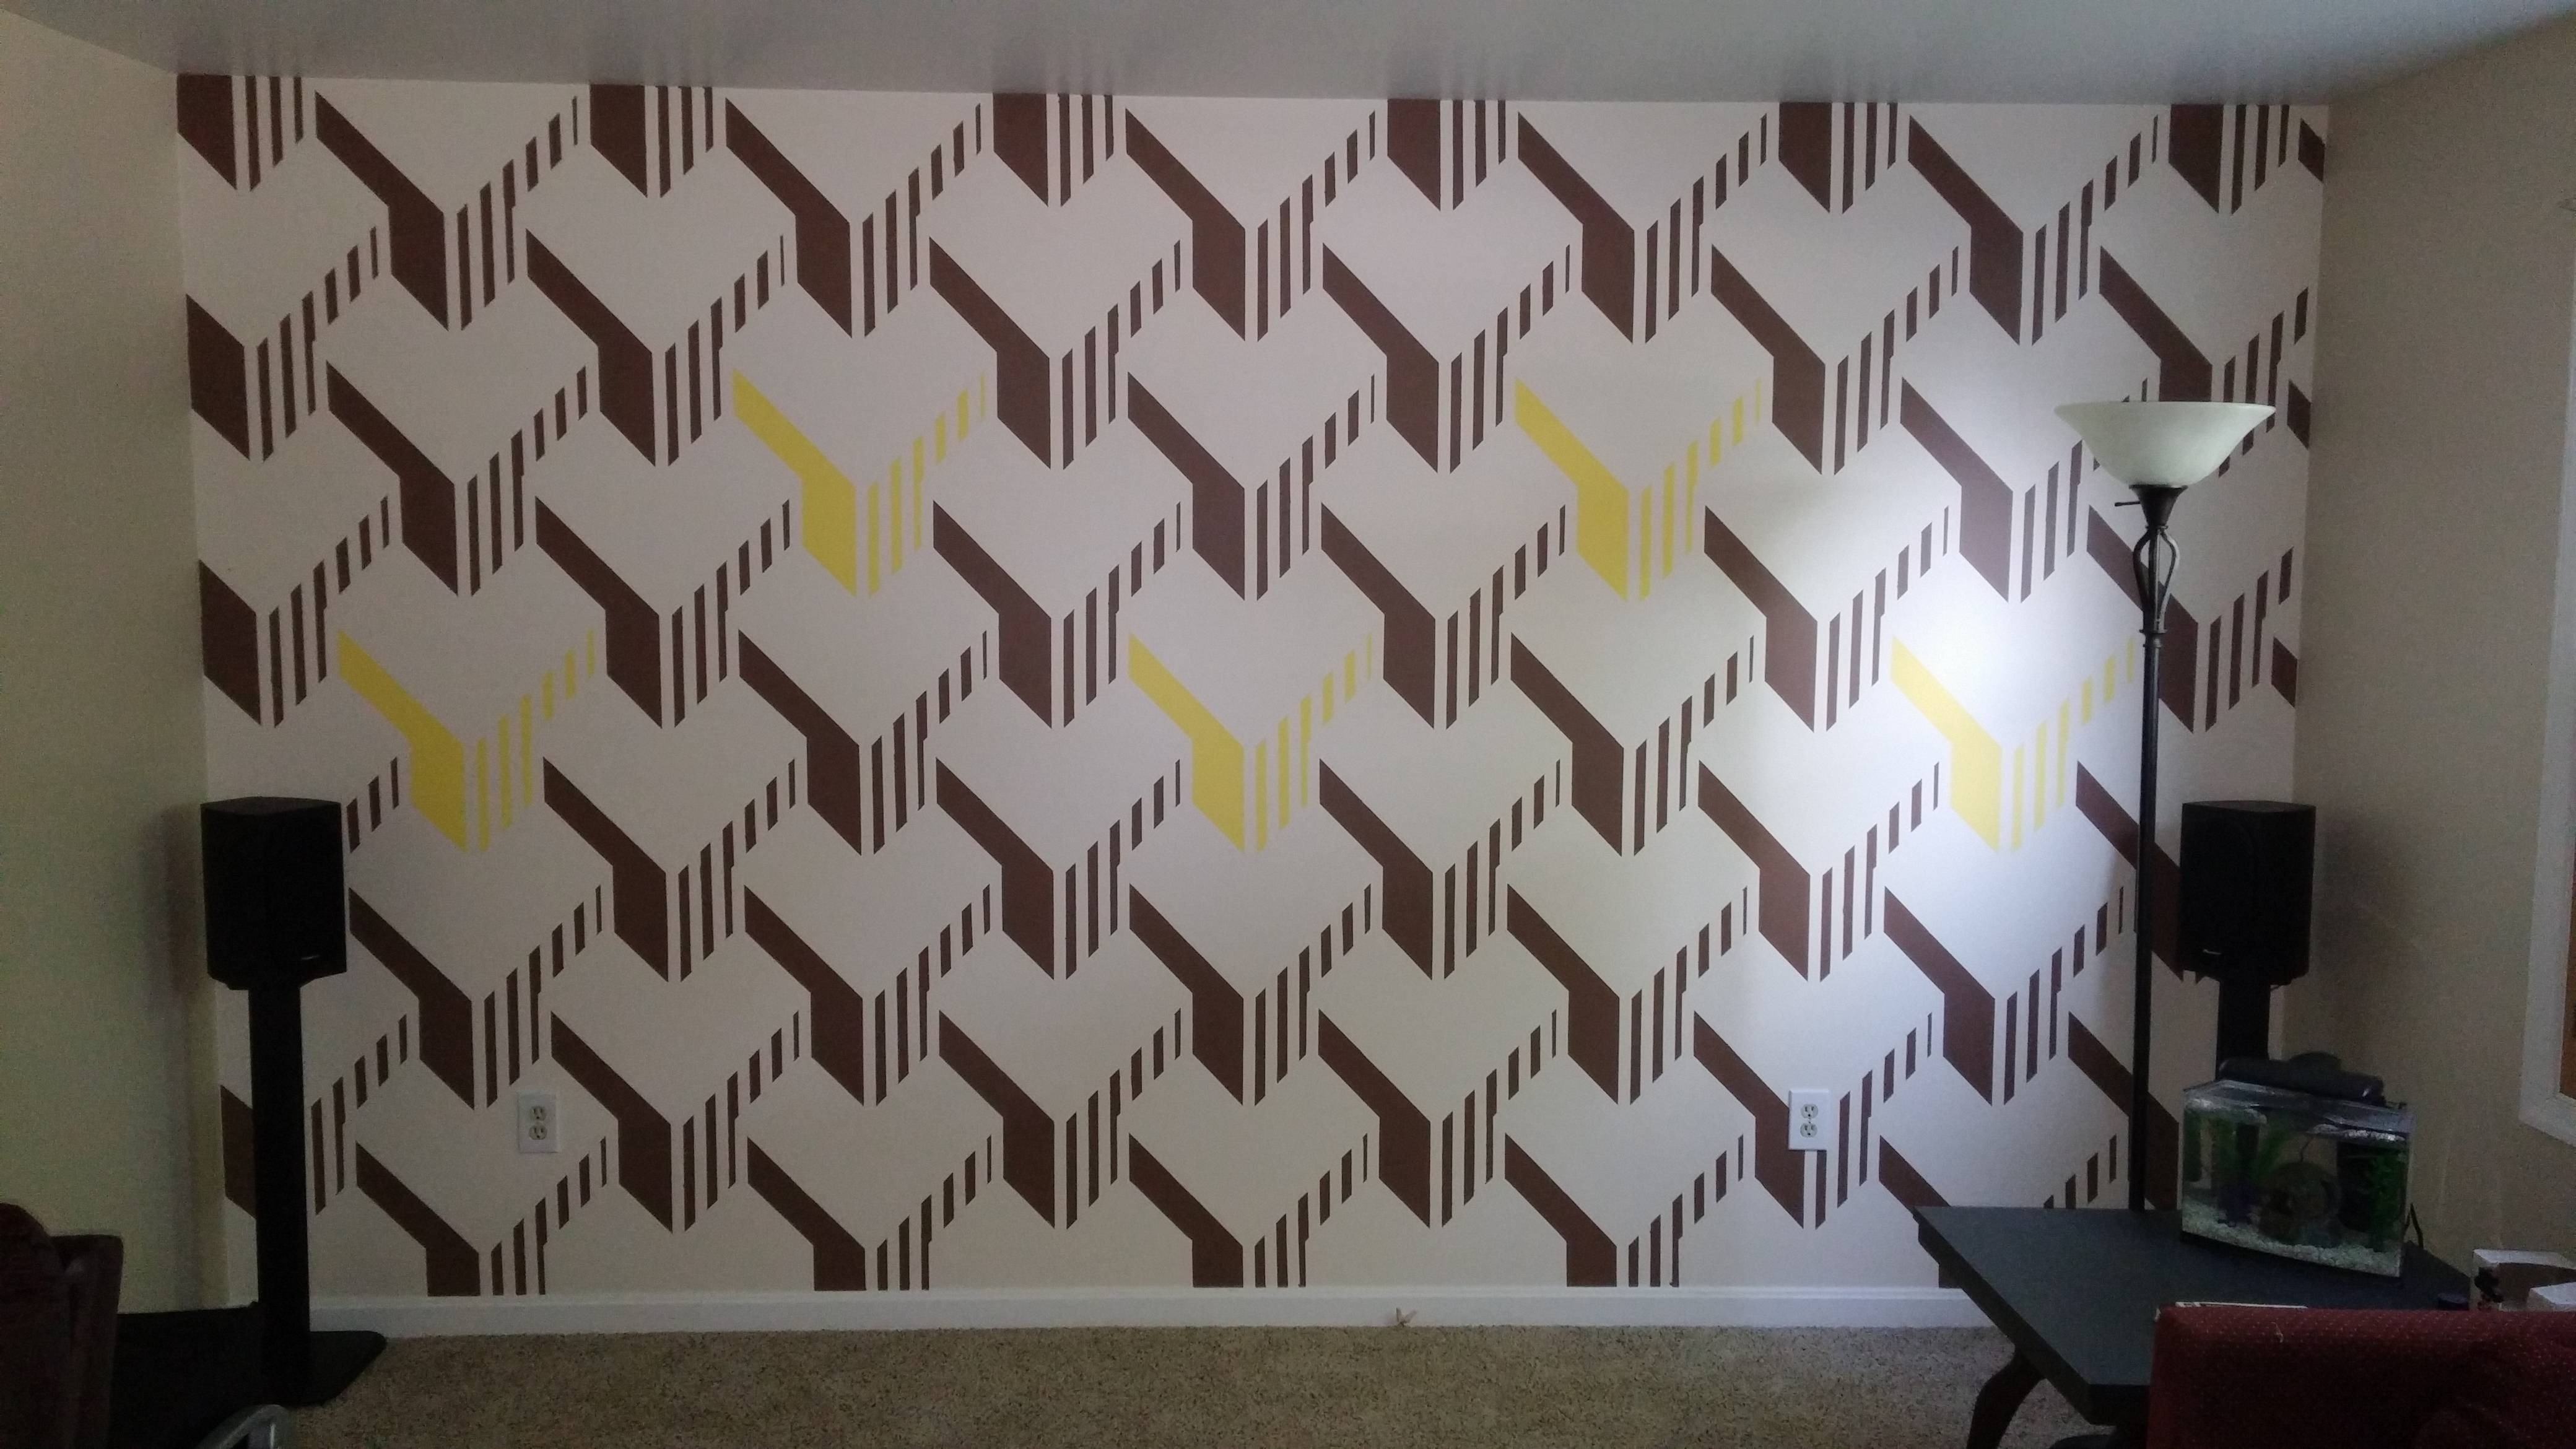 I Painted My Living Room Wall. – Album On Imgur For Most Up To Date Cubes 3d Wall Art (Gallery 3 of 20)